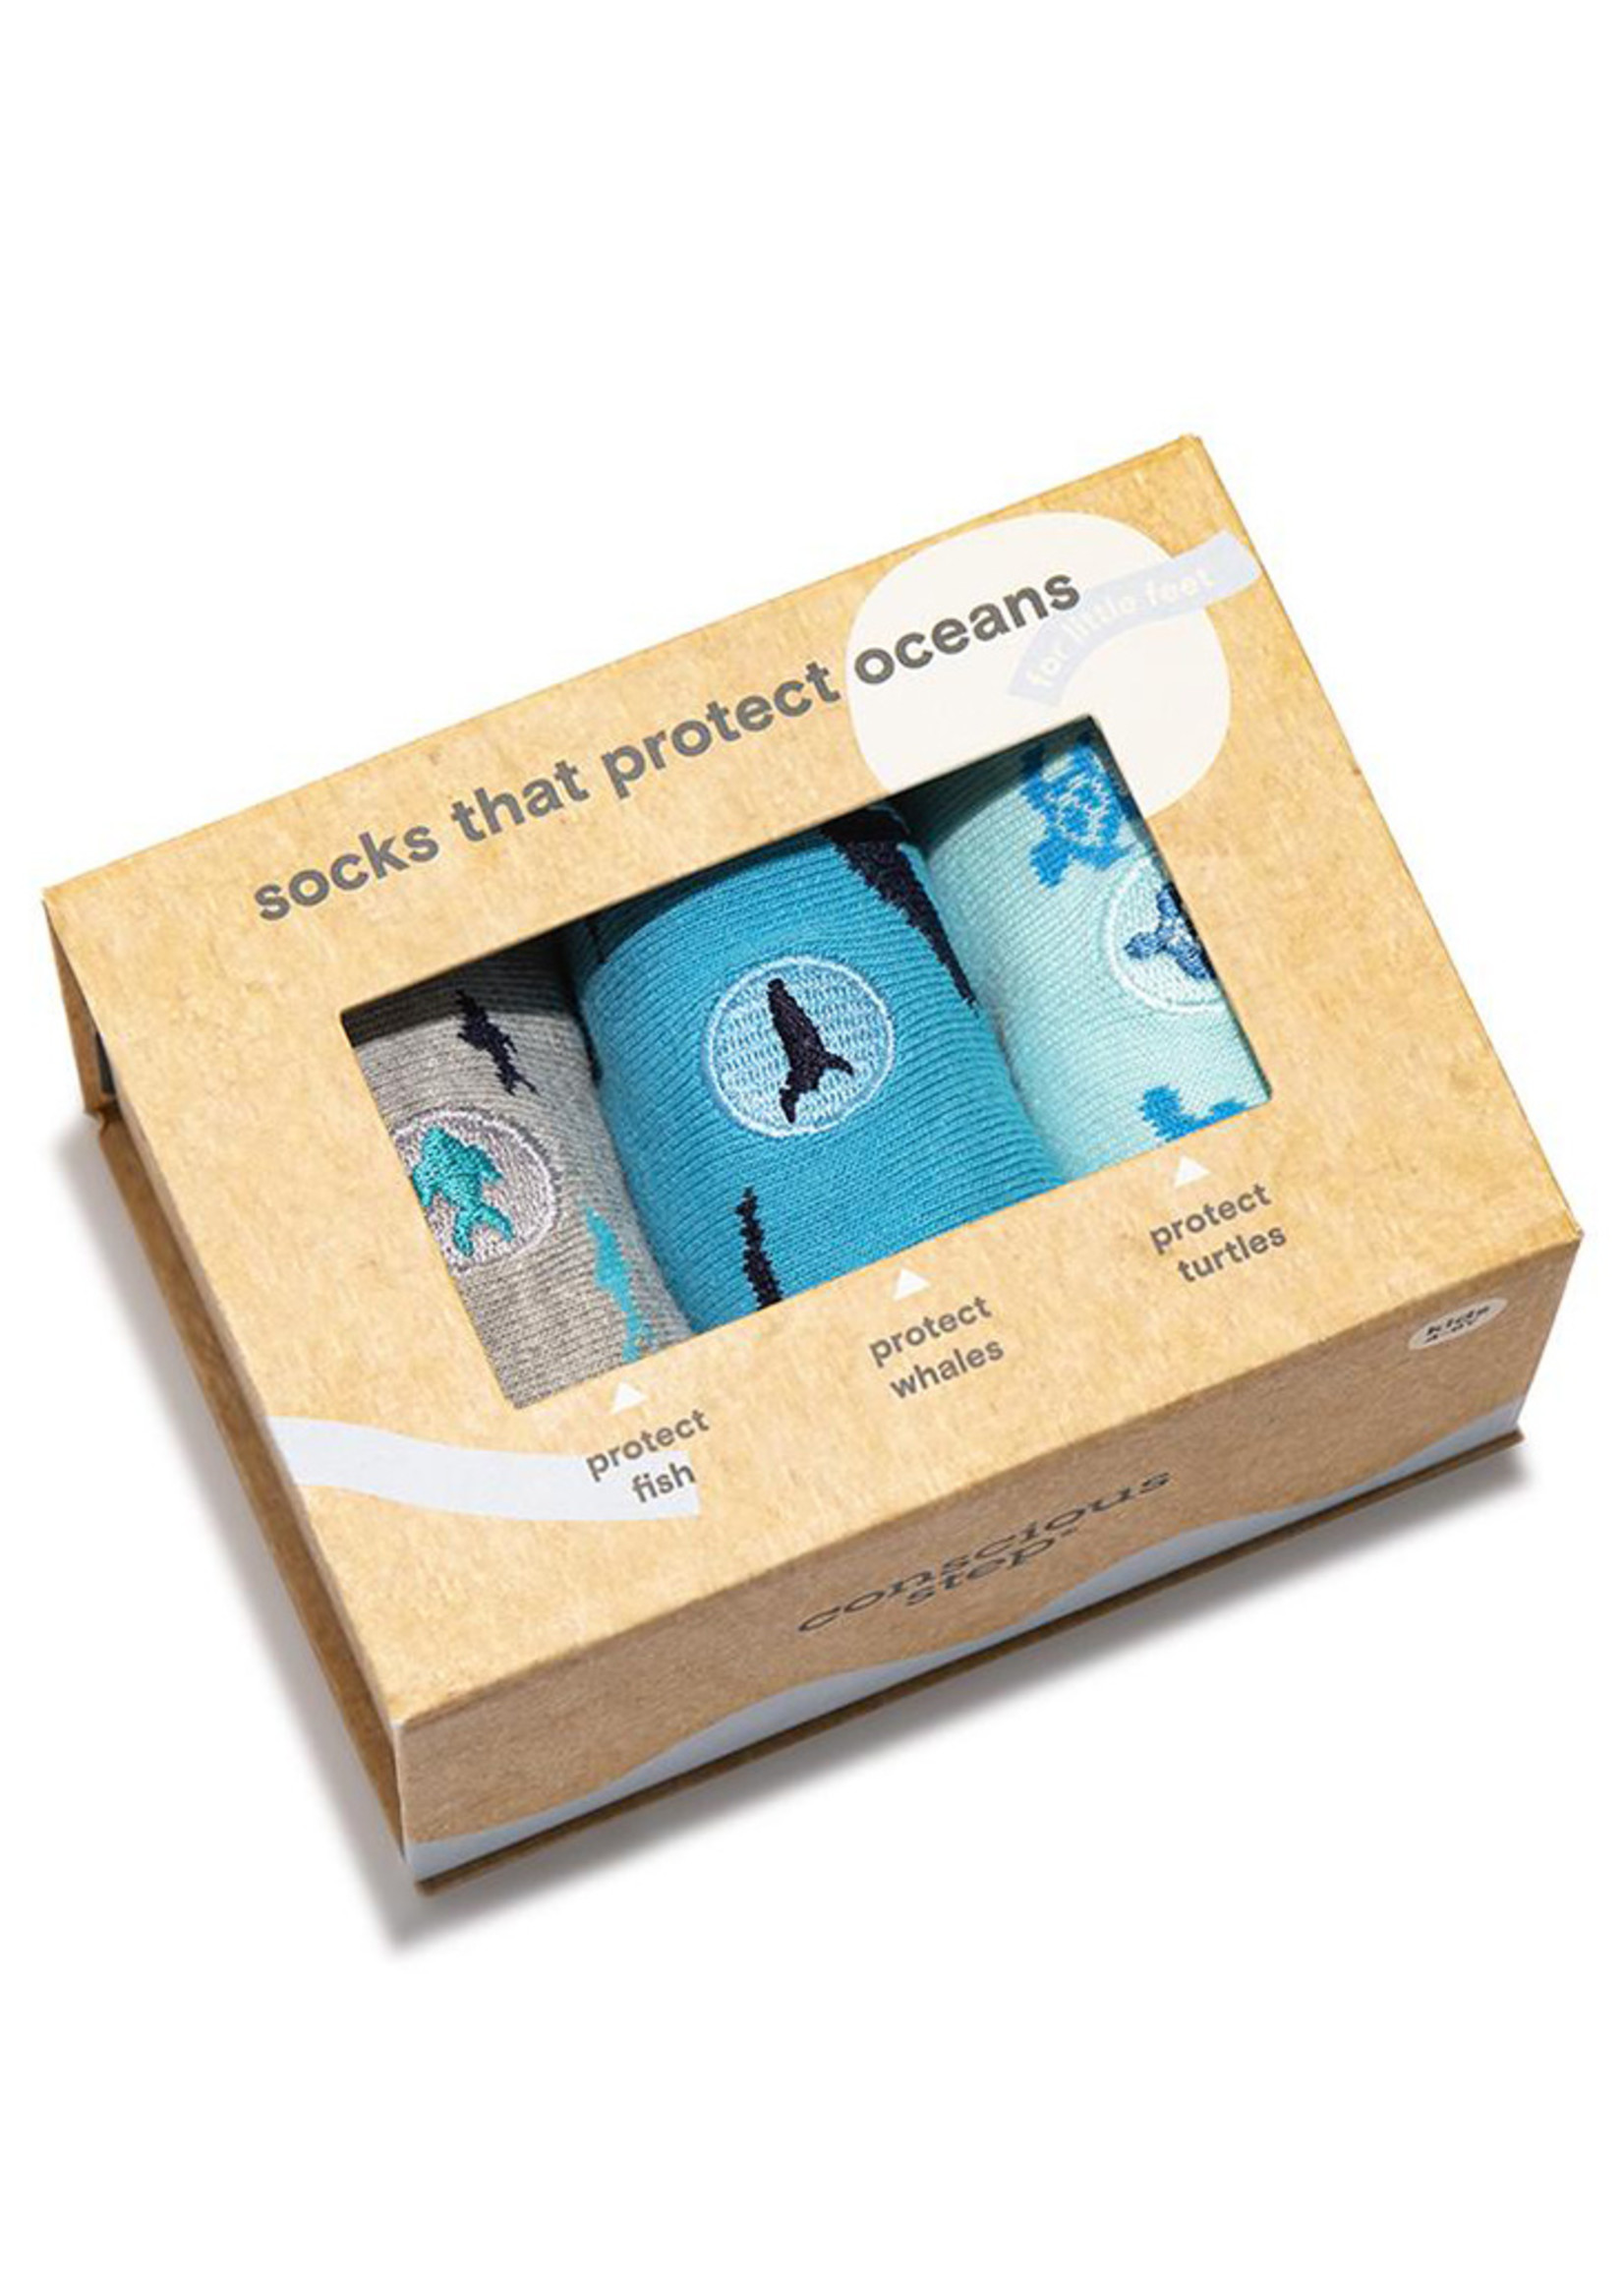 Conscious Step Kid's Sock Box Protects Oceans 4-6Y